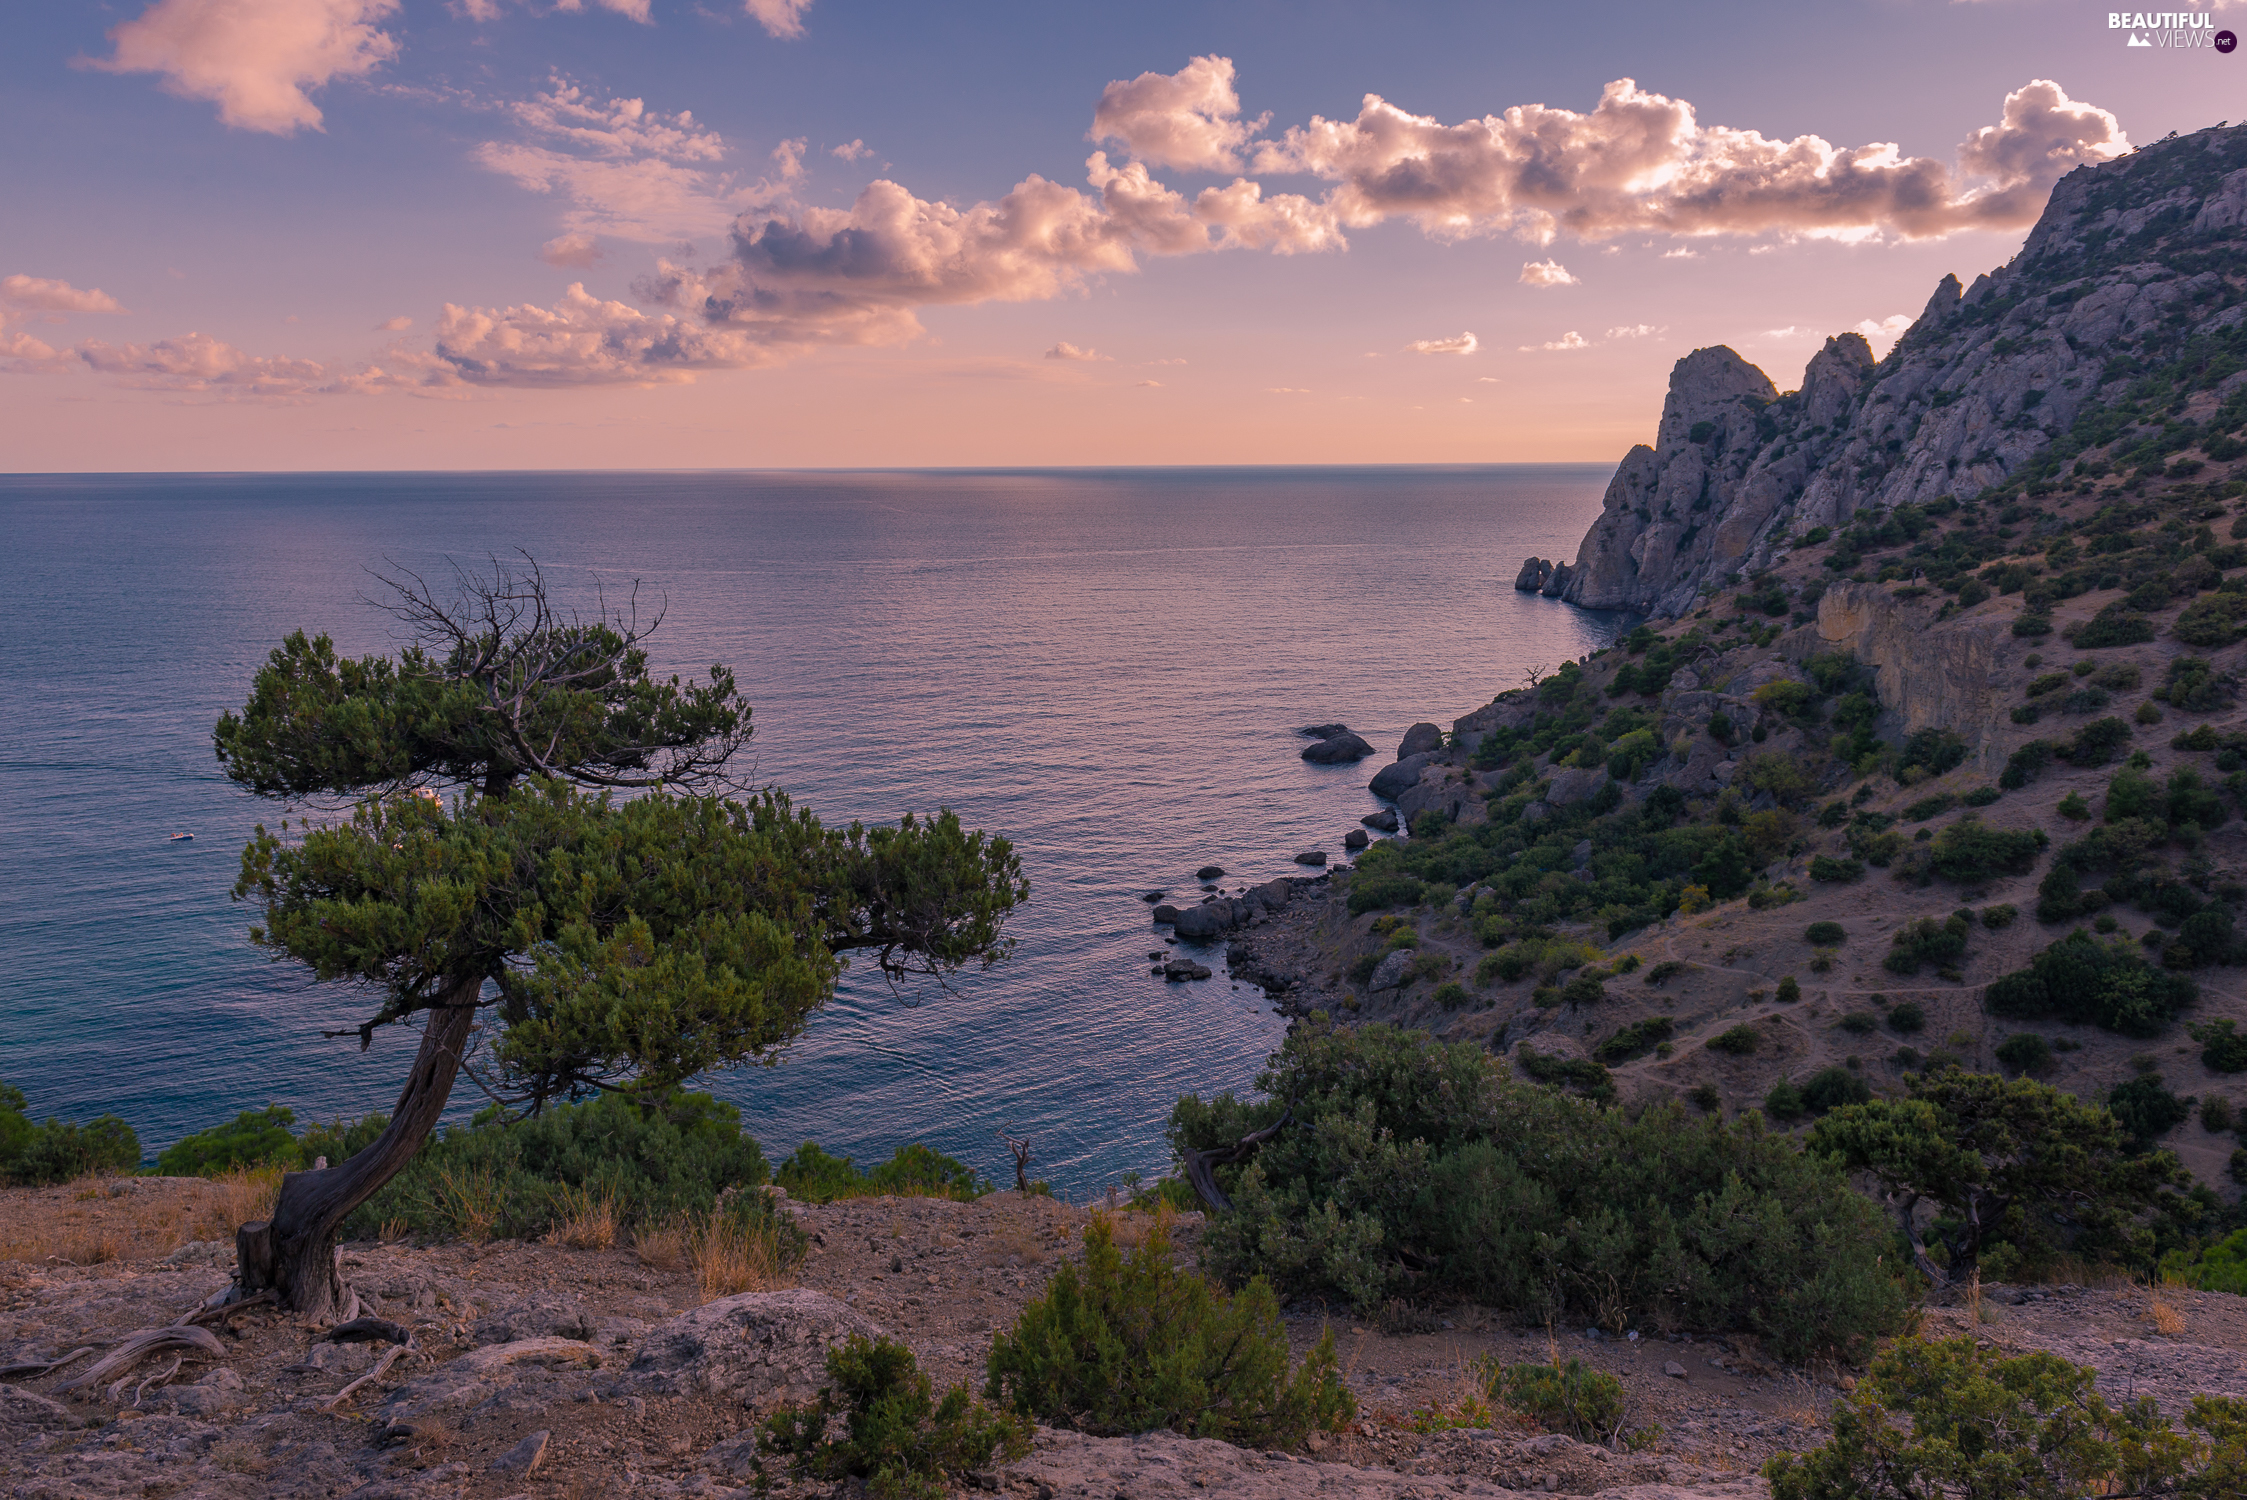 coast, Great Sunsets, trees, clouds, sea, rocks, Plants